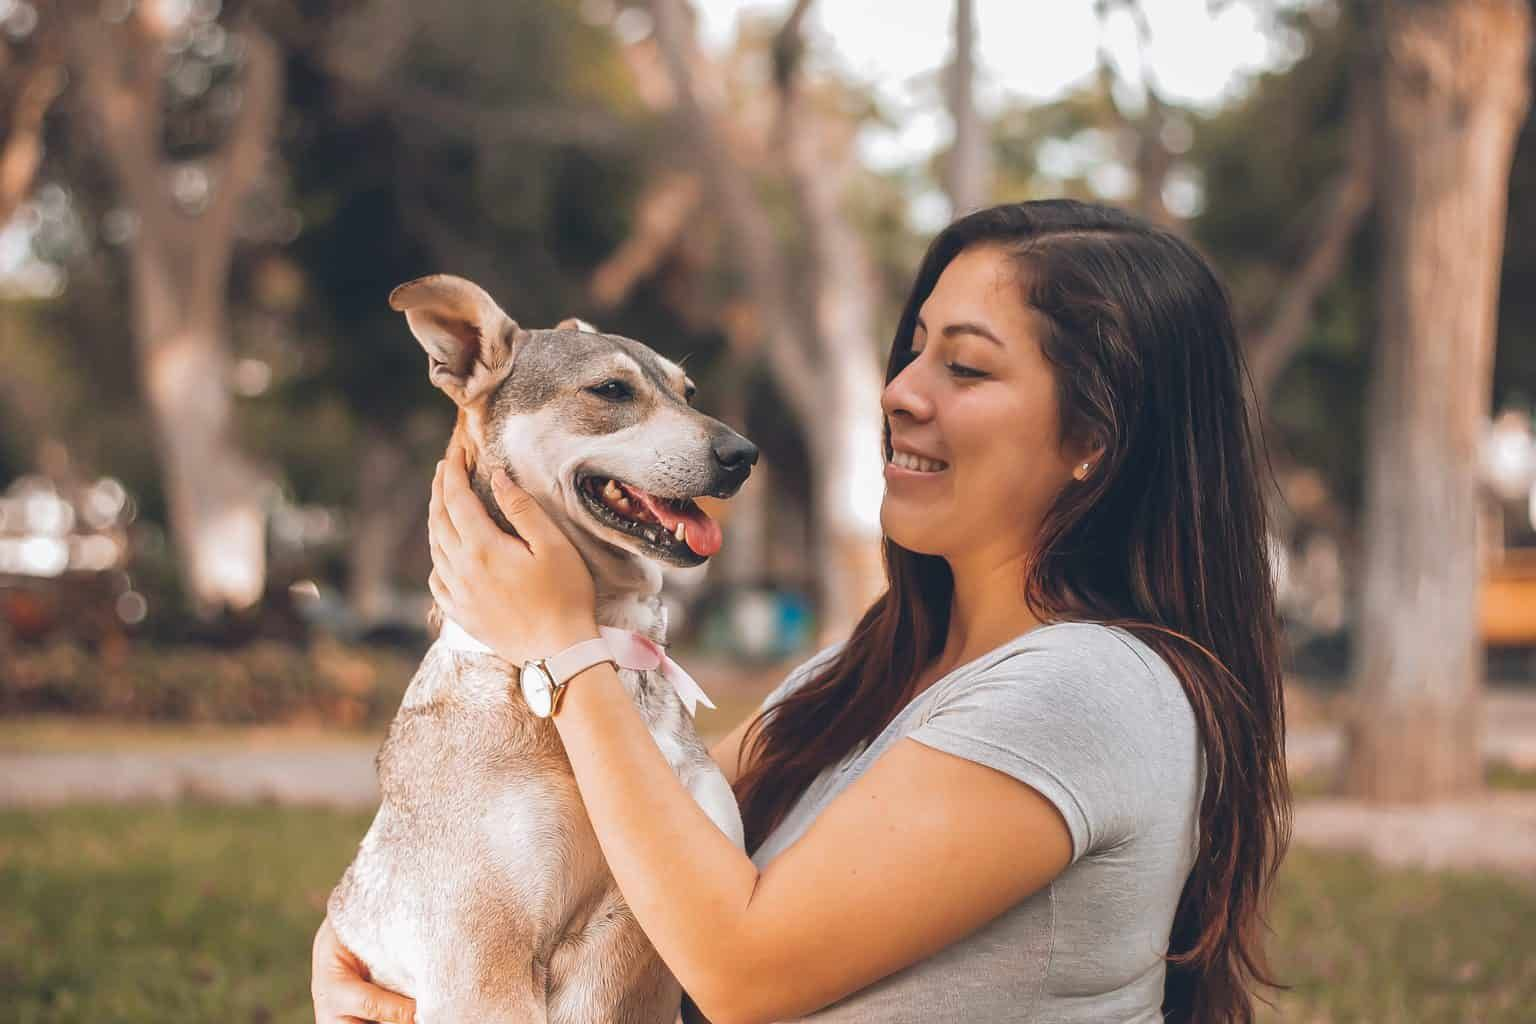 If you are looking for pet sitter jobs but getting